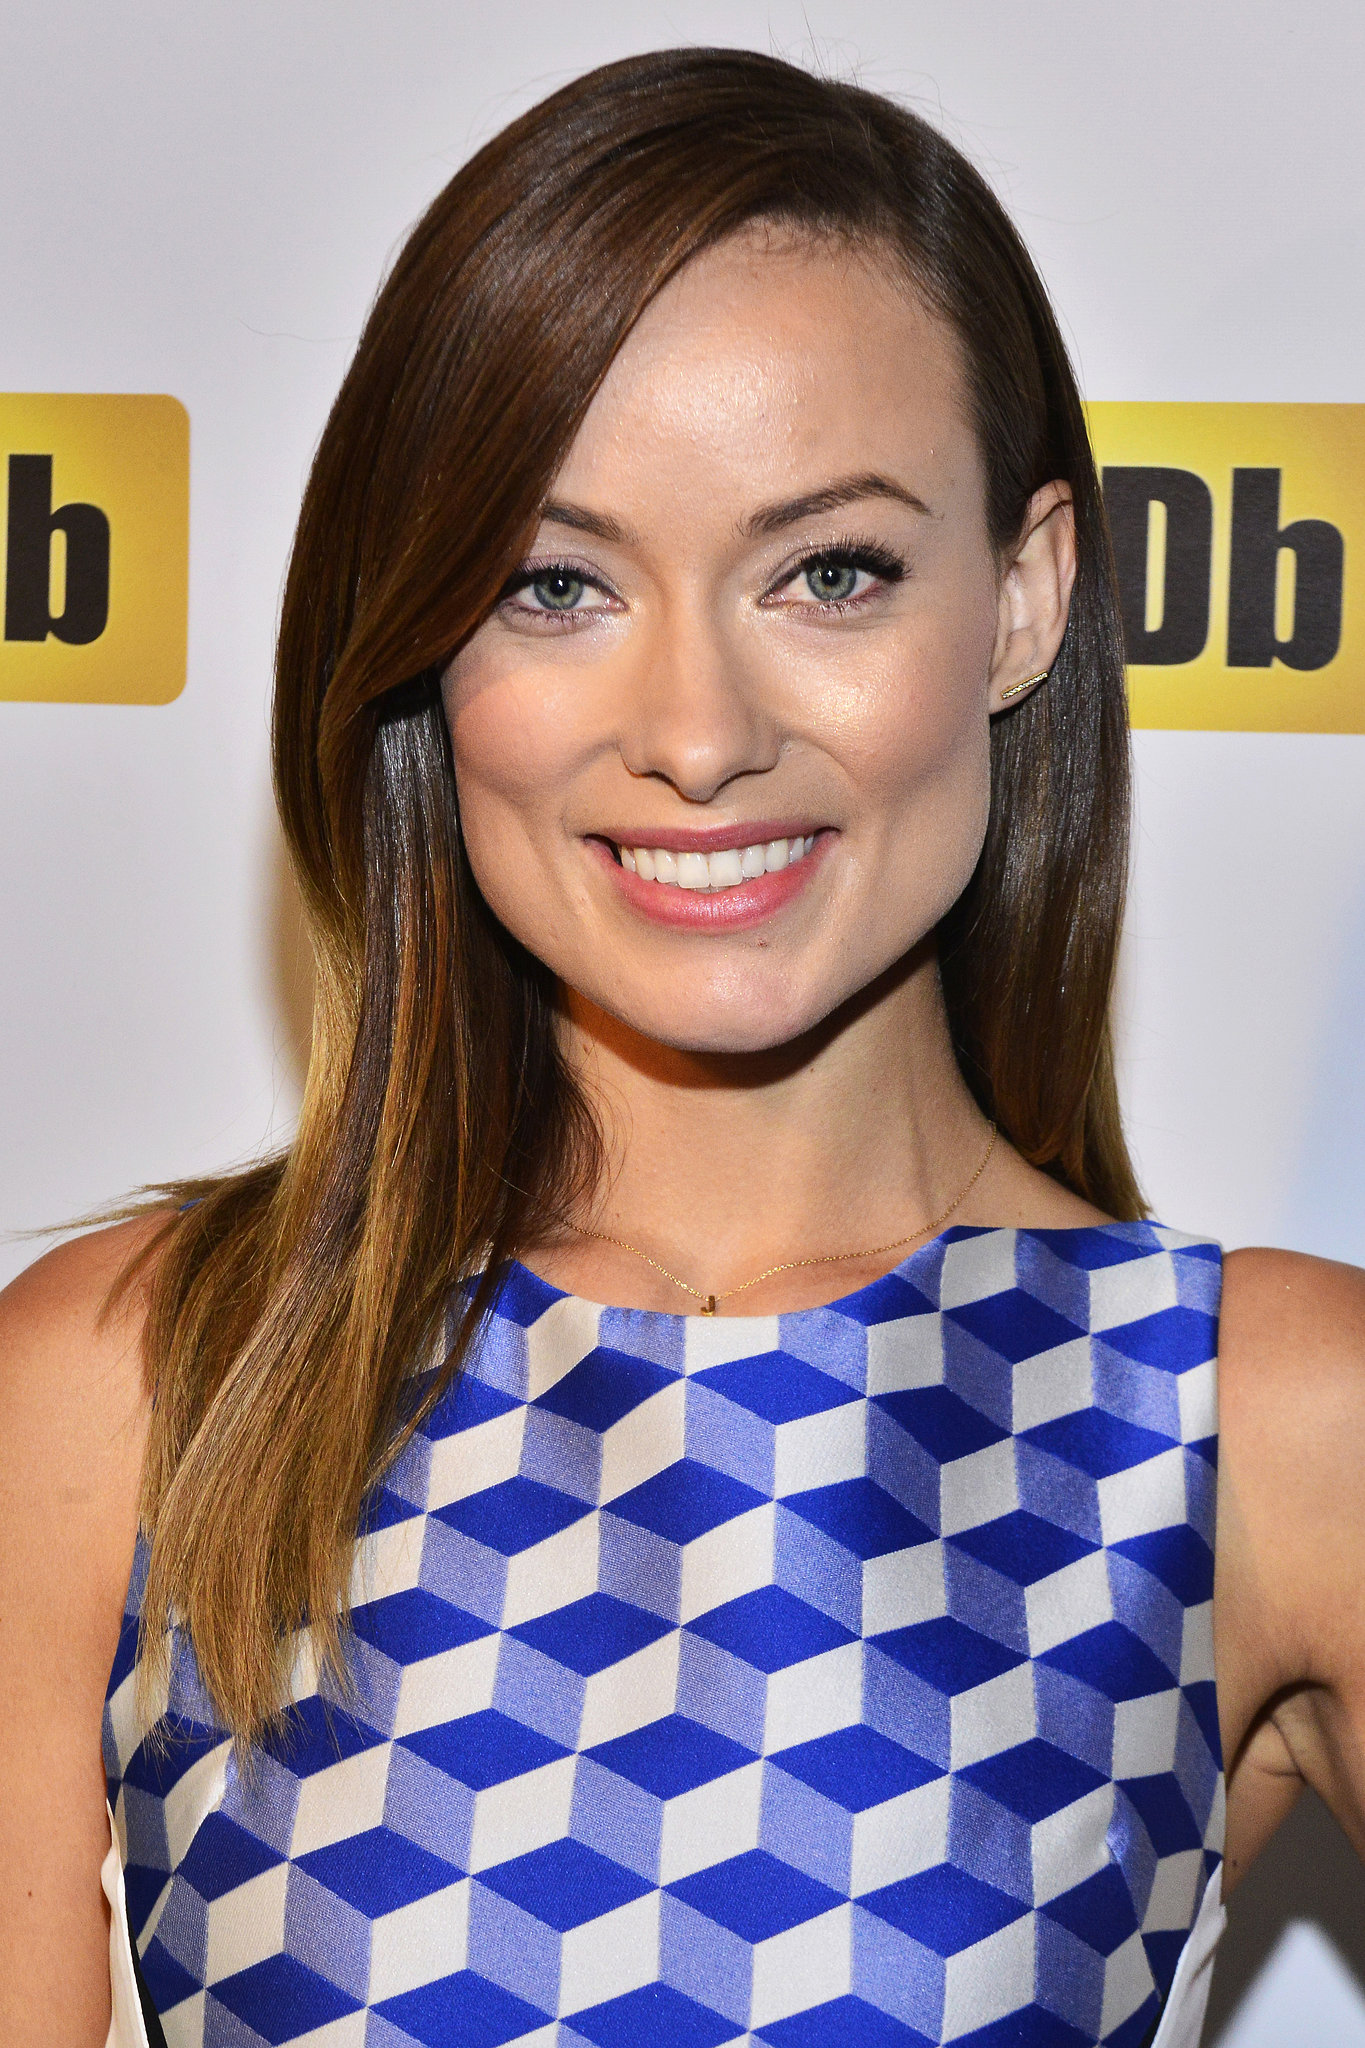 To receive IMDb's first-ever STARmeter Award, Olivia Wilde went with straight hair and a pretty eyeliner look.